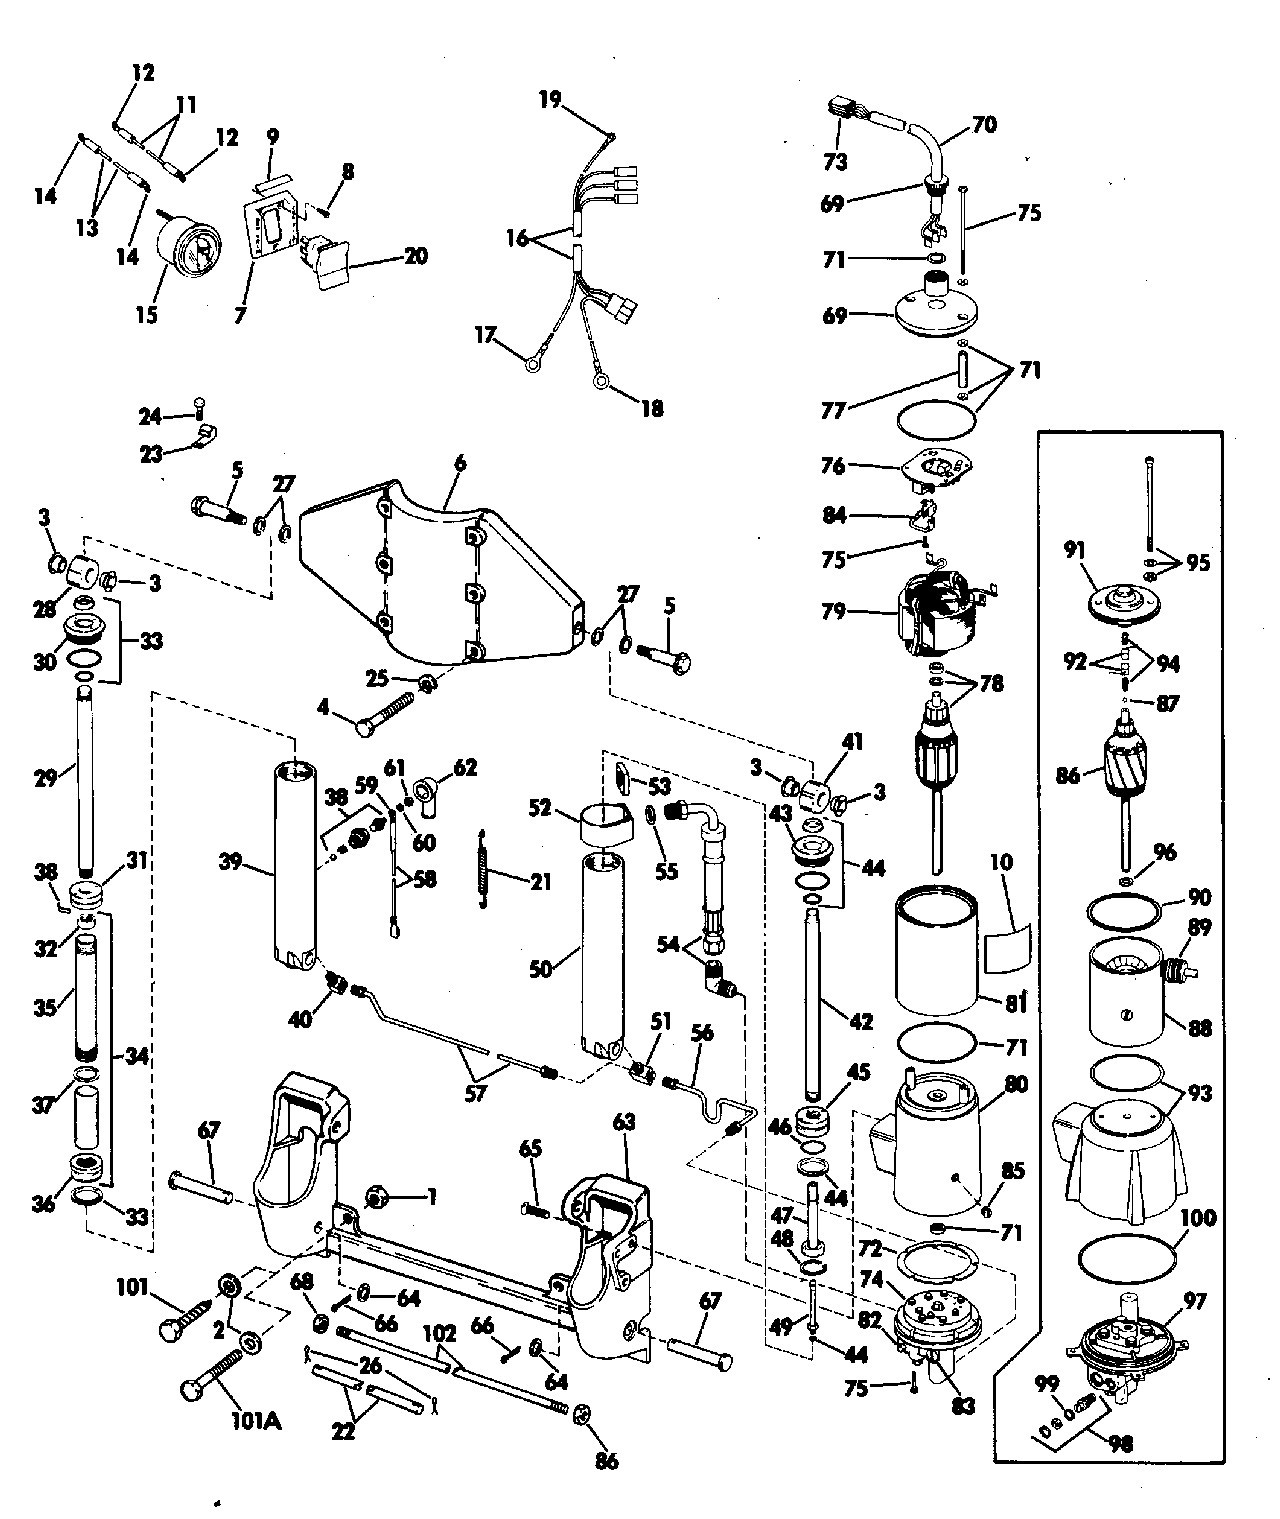 Evinrude outboard parts diagram power tilt and trim 50 hp electrical 1974 accessories for 1974 of